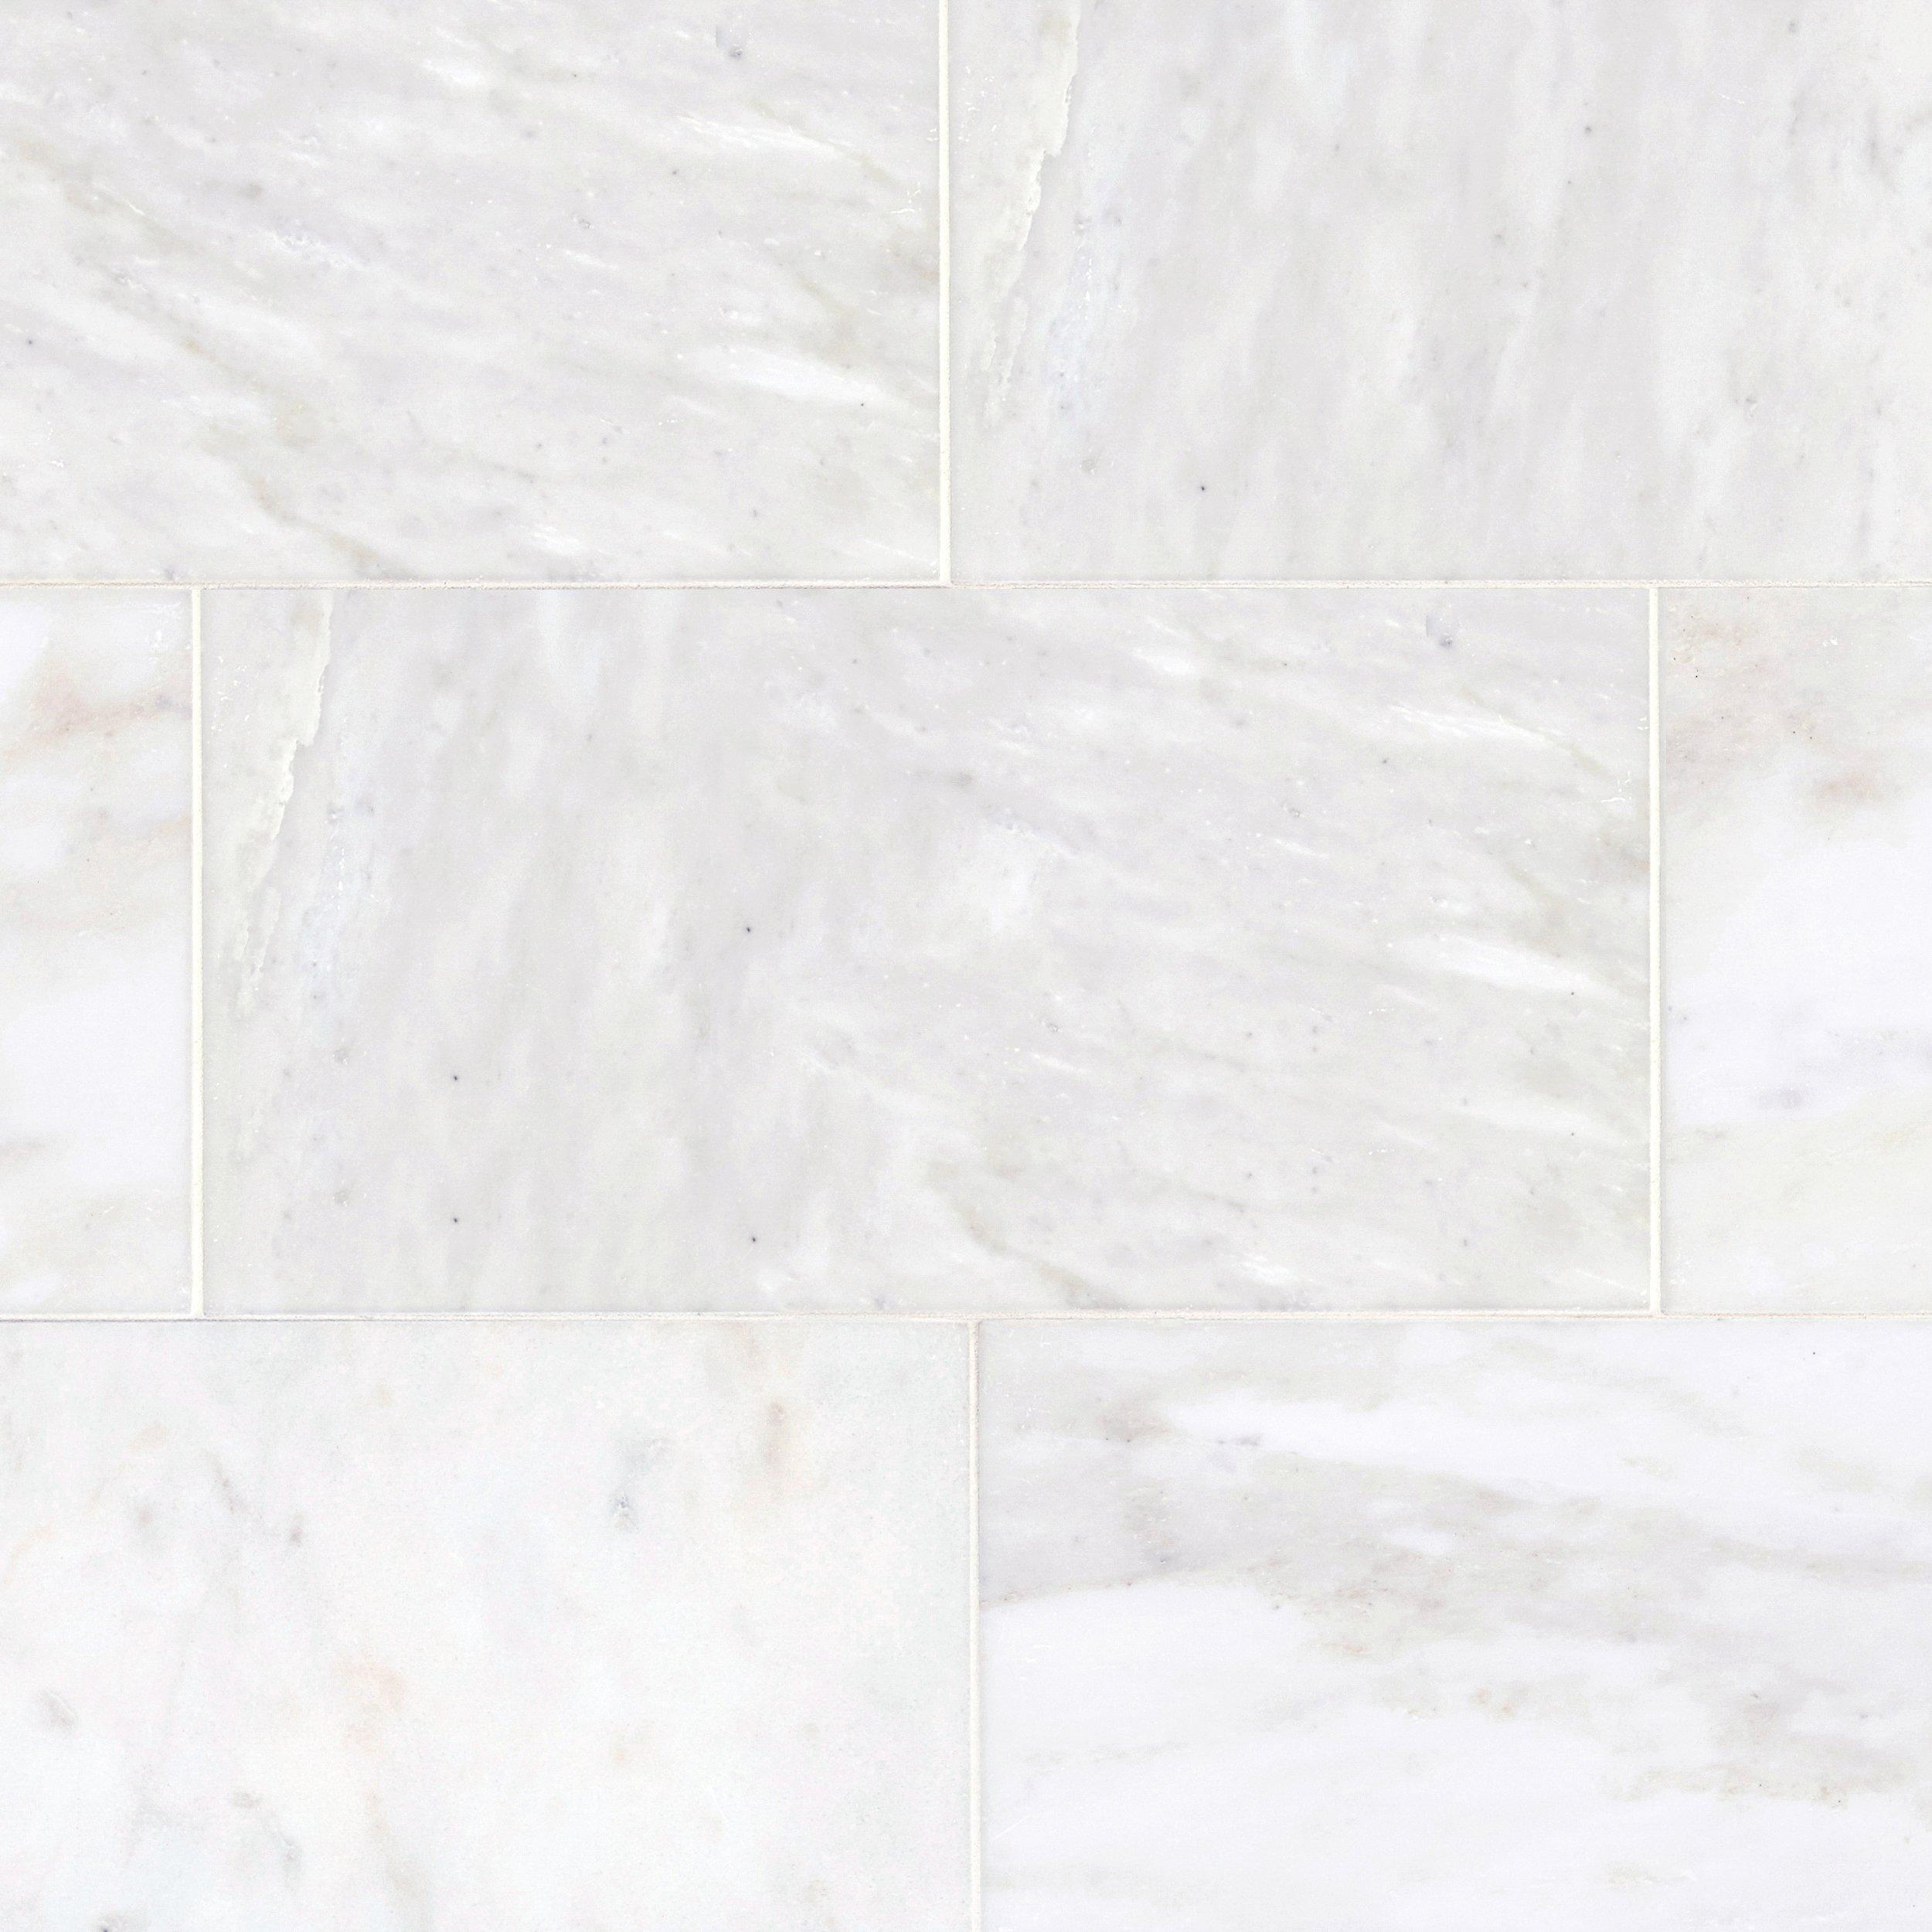 White Marble Floor Tiles. Marble Floor Tile White Tiles A - Brint.co